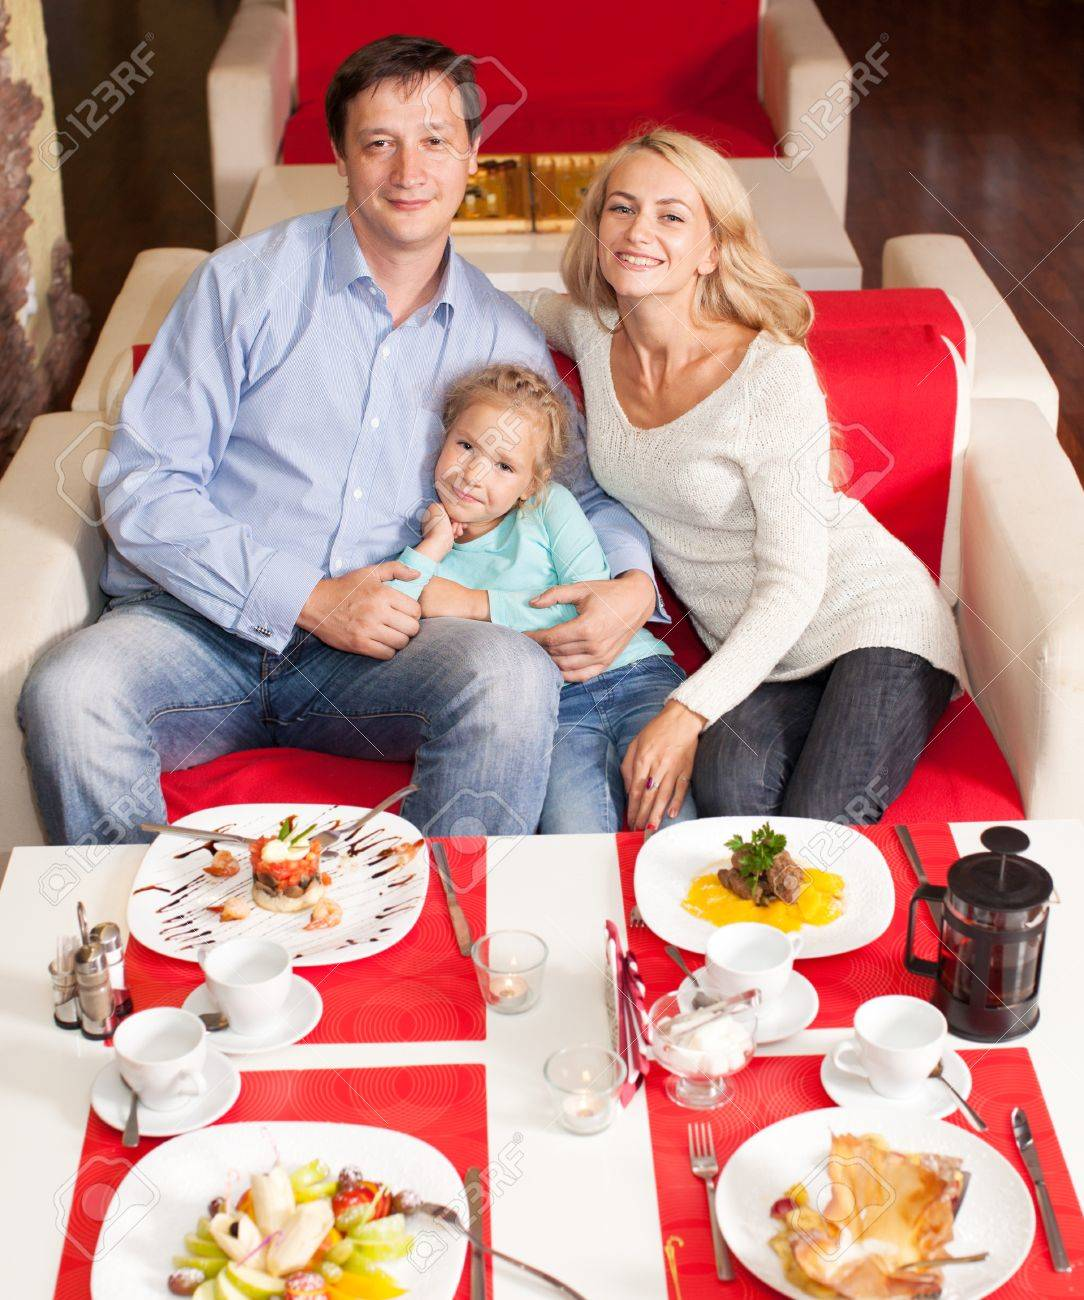 Happy Family Eating In Restaurant Mother Father And Child Cafe Stock Photo